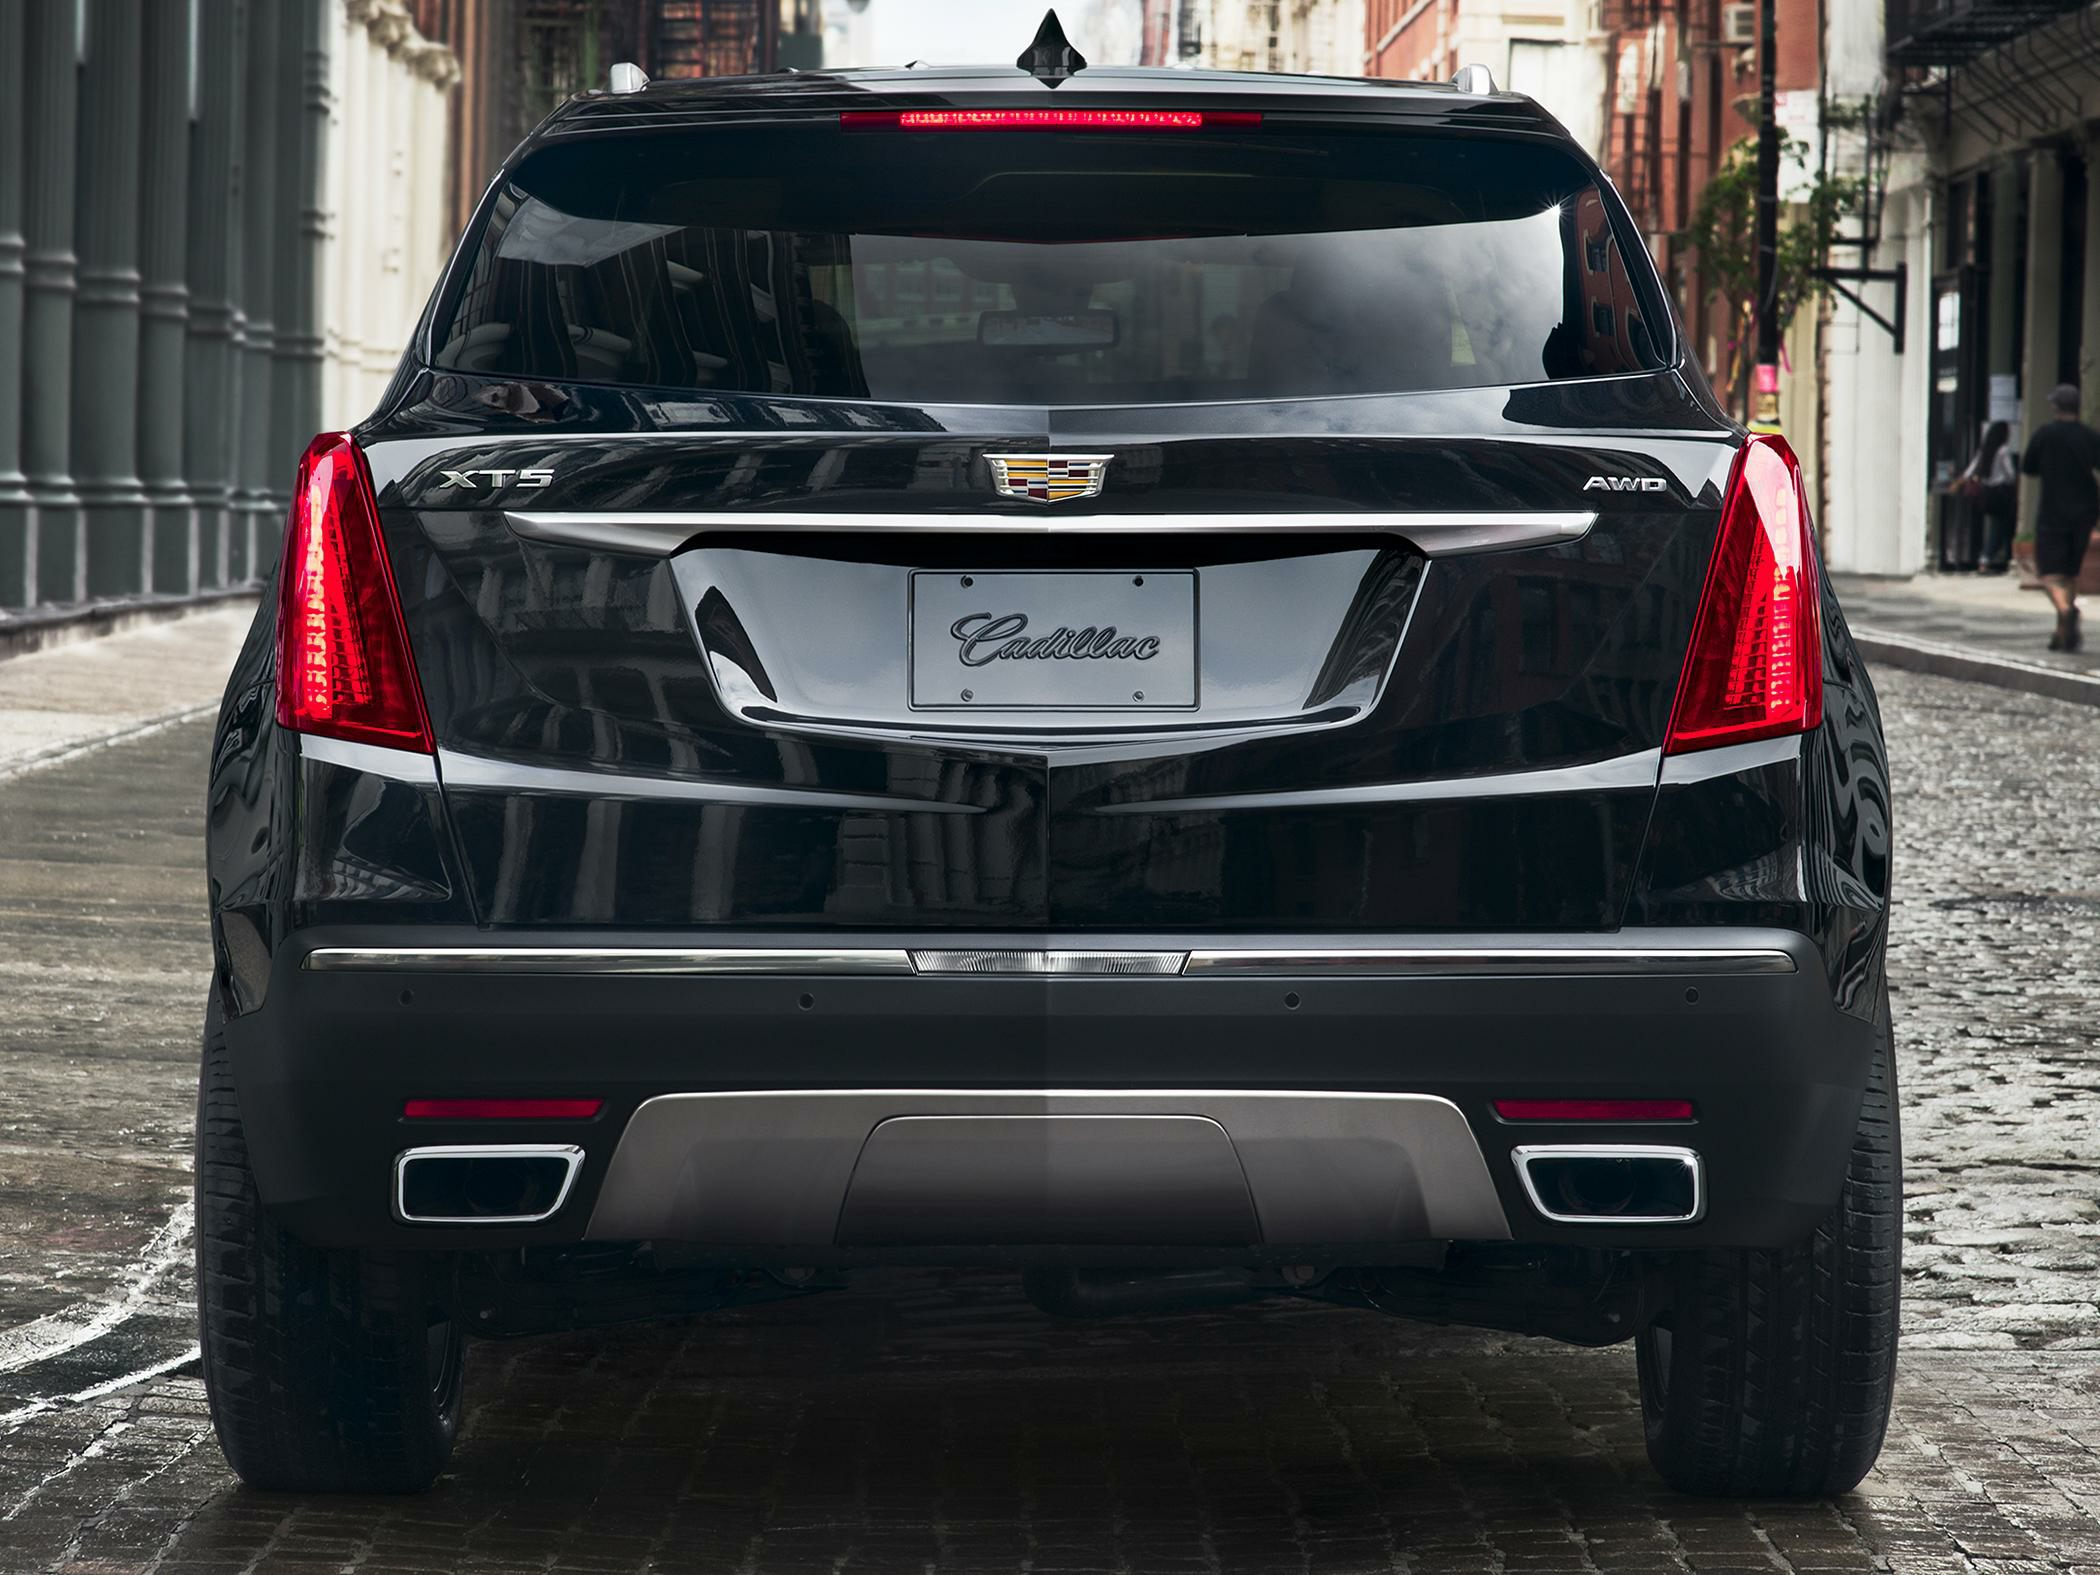 2017 Cadillac XT5 Deals, Prices, Incentives & Leases ...